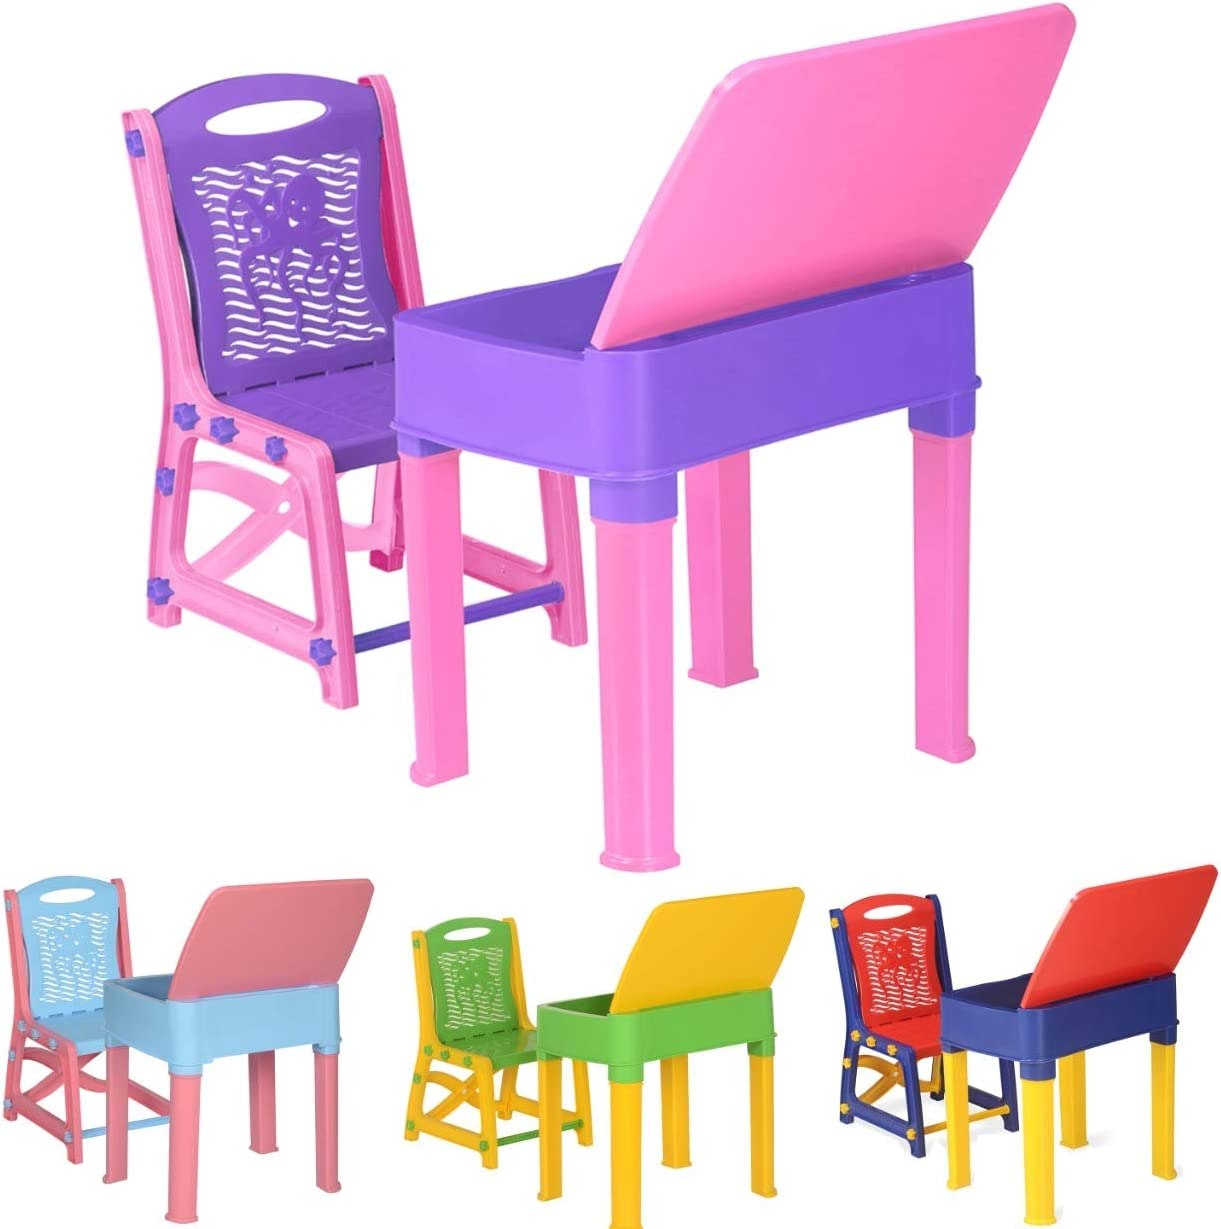 A406 Kids Study Desk Study table and chair set Juniors Toddler study chair and desk for children boys and girls gift set Blue